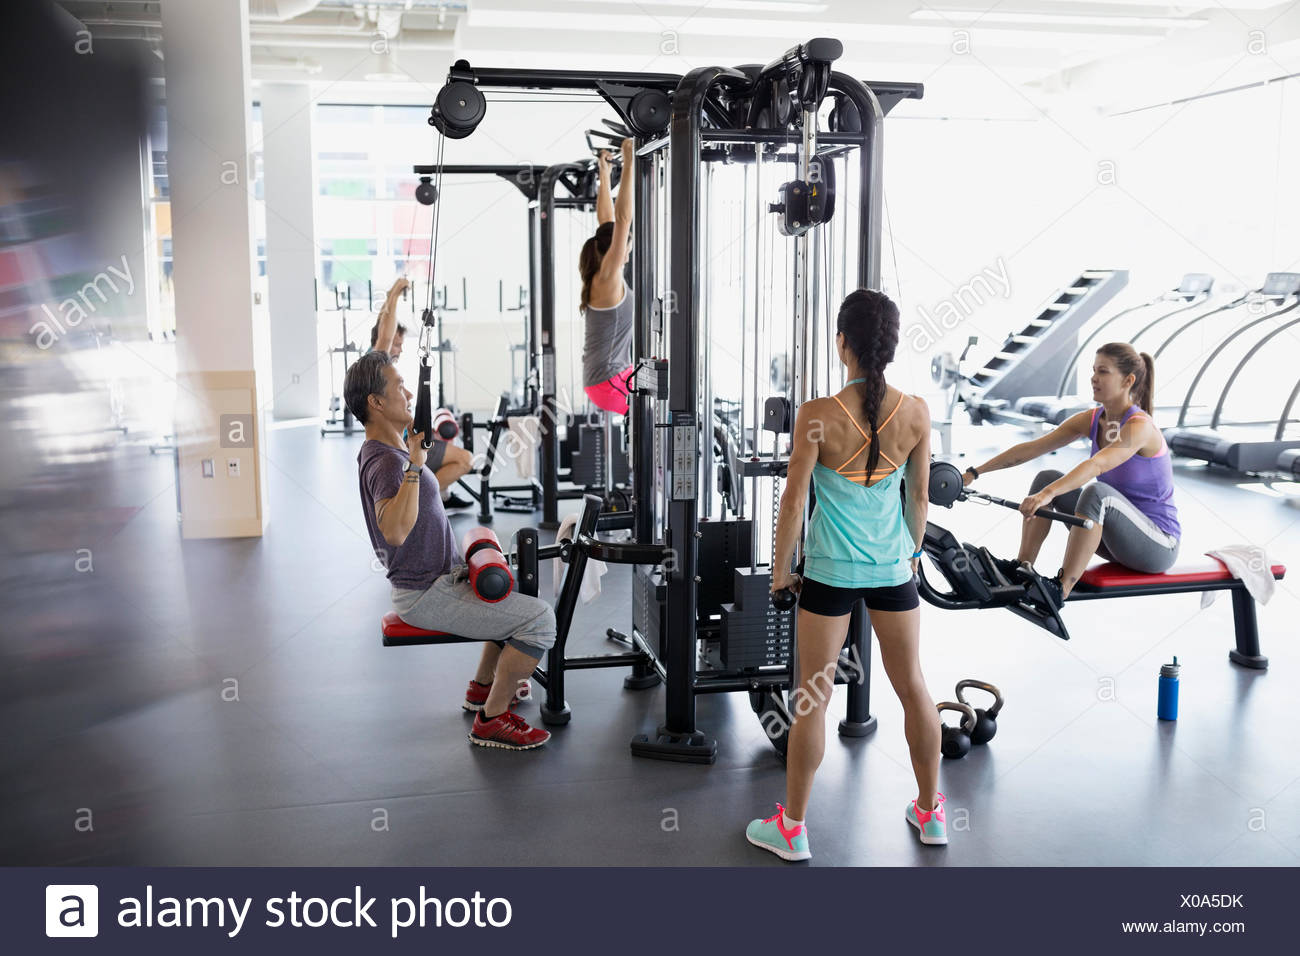 People working out on exercise equipment at gym - Stock Image